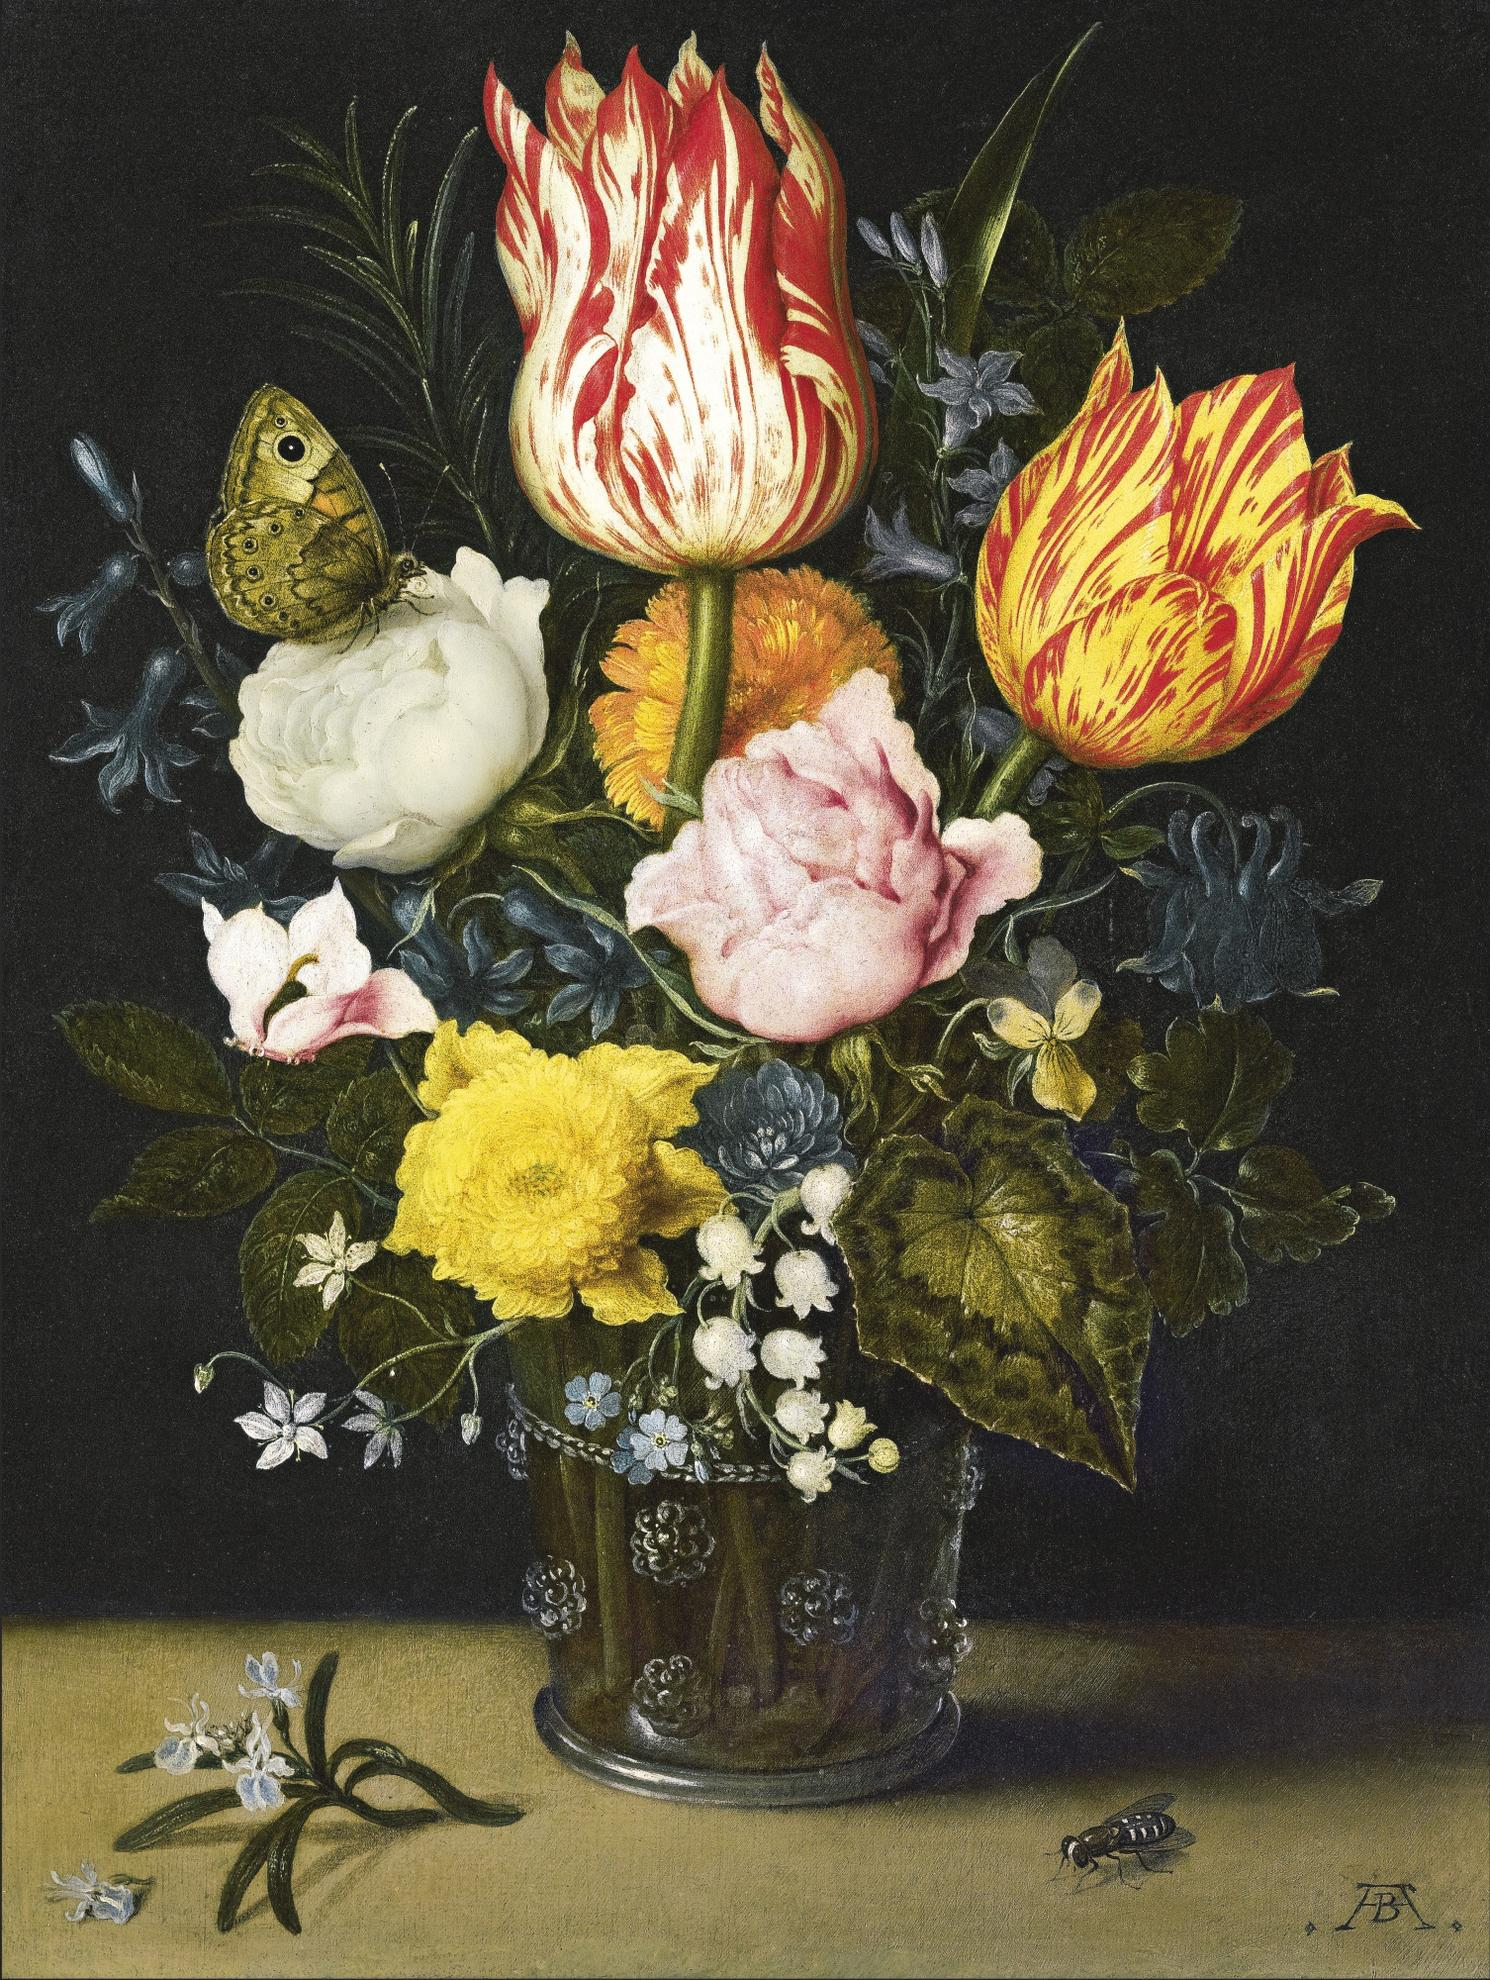 Ambrosius Bosschaert The Elder - Still Life Of Flowers In A Berkemeijer Glass Beaker Decorated With Raspberry Prunts, Including Red And White Parrot Tulips, A White Rose With A Butterfuly And A Pink Rose, Marigolds, Lily-Of-The-Valley, Forget-Me-Not And Violets, With A Sprig Of Rosemary And A Fly On The Shelf Beneath-